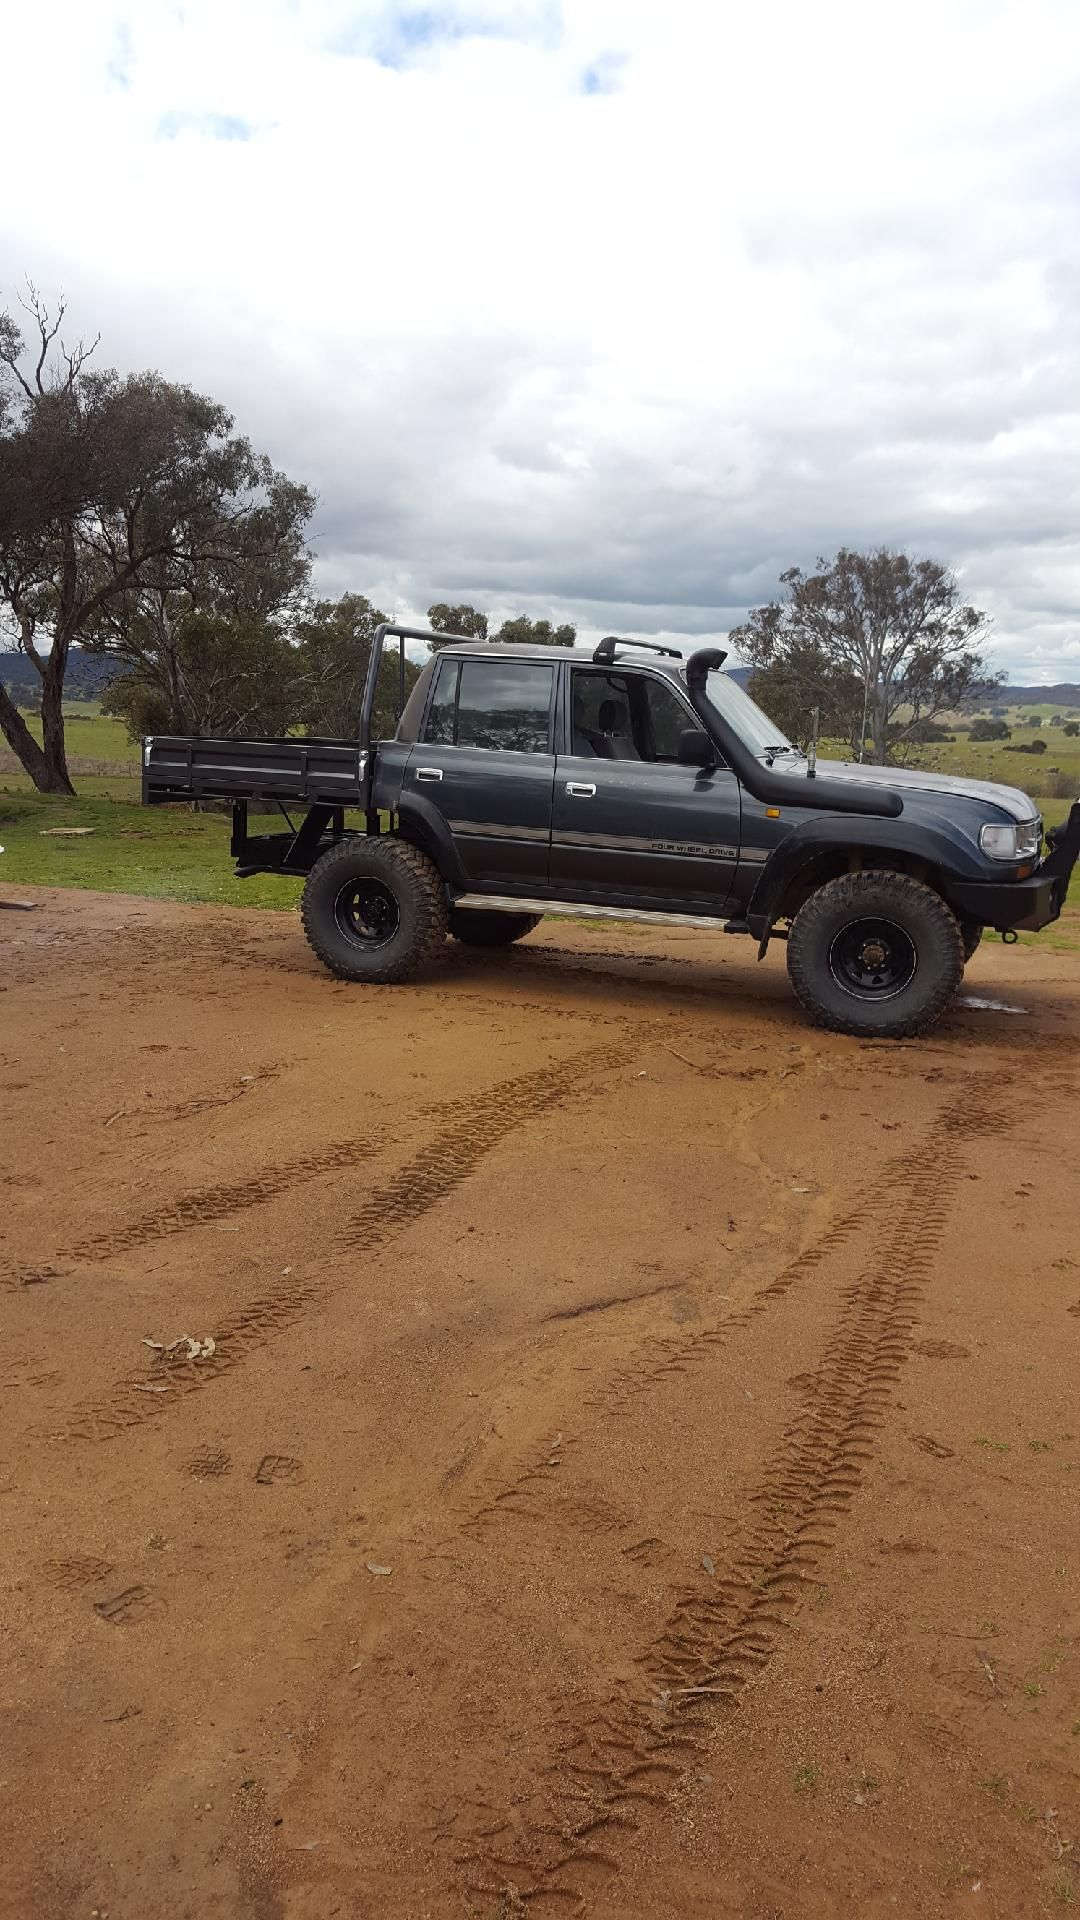 Weapon of choice | Chopped 1HDT 80 series land cruiser ute